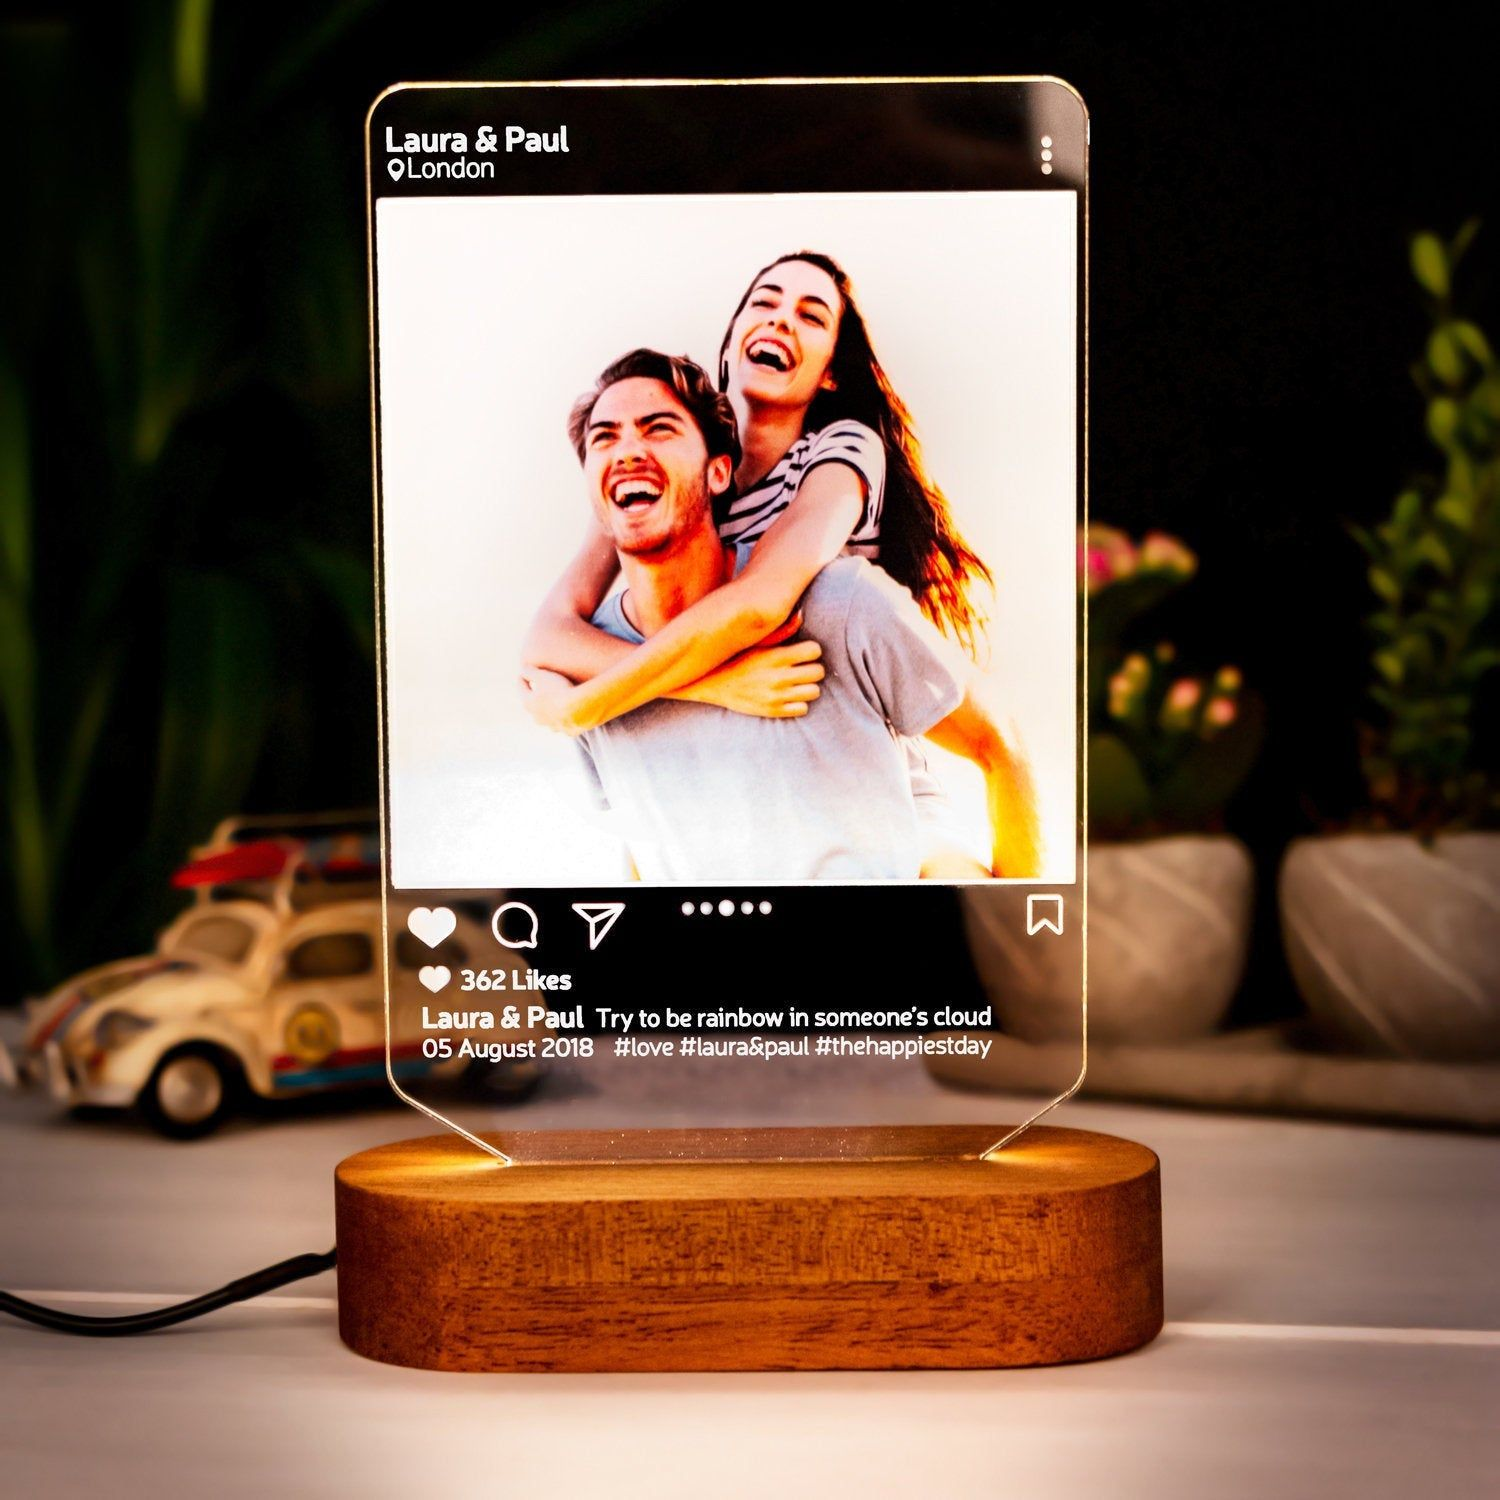 Instagram Style 3d Led Lamp Gift Personalised Lamp Gift For Etsy In 2020 3d Led Lamp Photo Lamp Anniversay Gifts